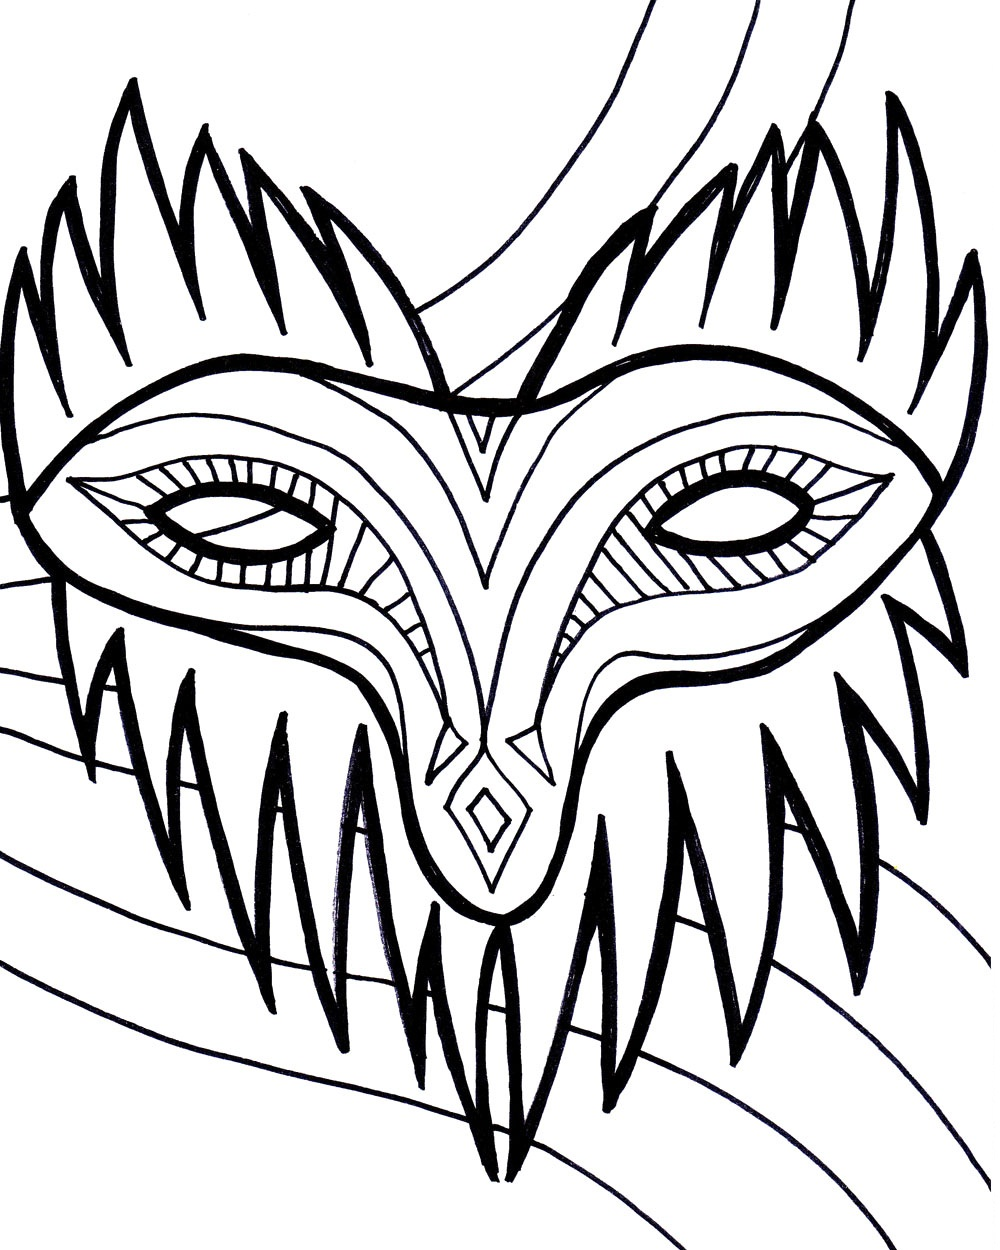 Masquerade Masks Drawing at GetDrawings.com | Free for personal use ...